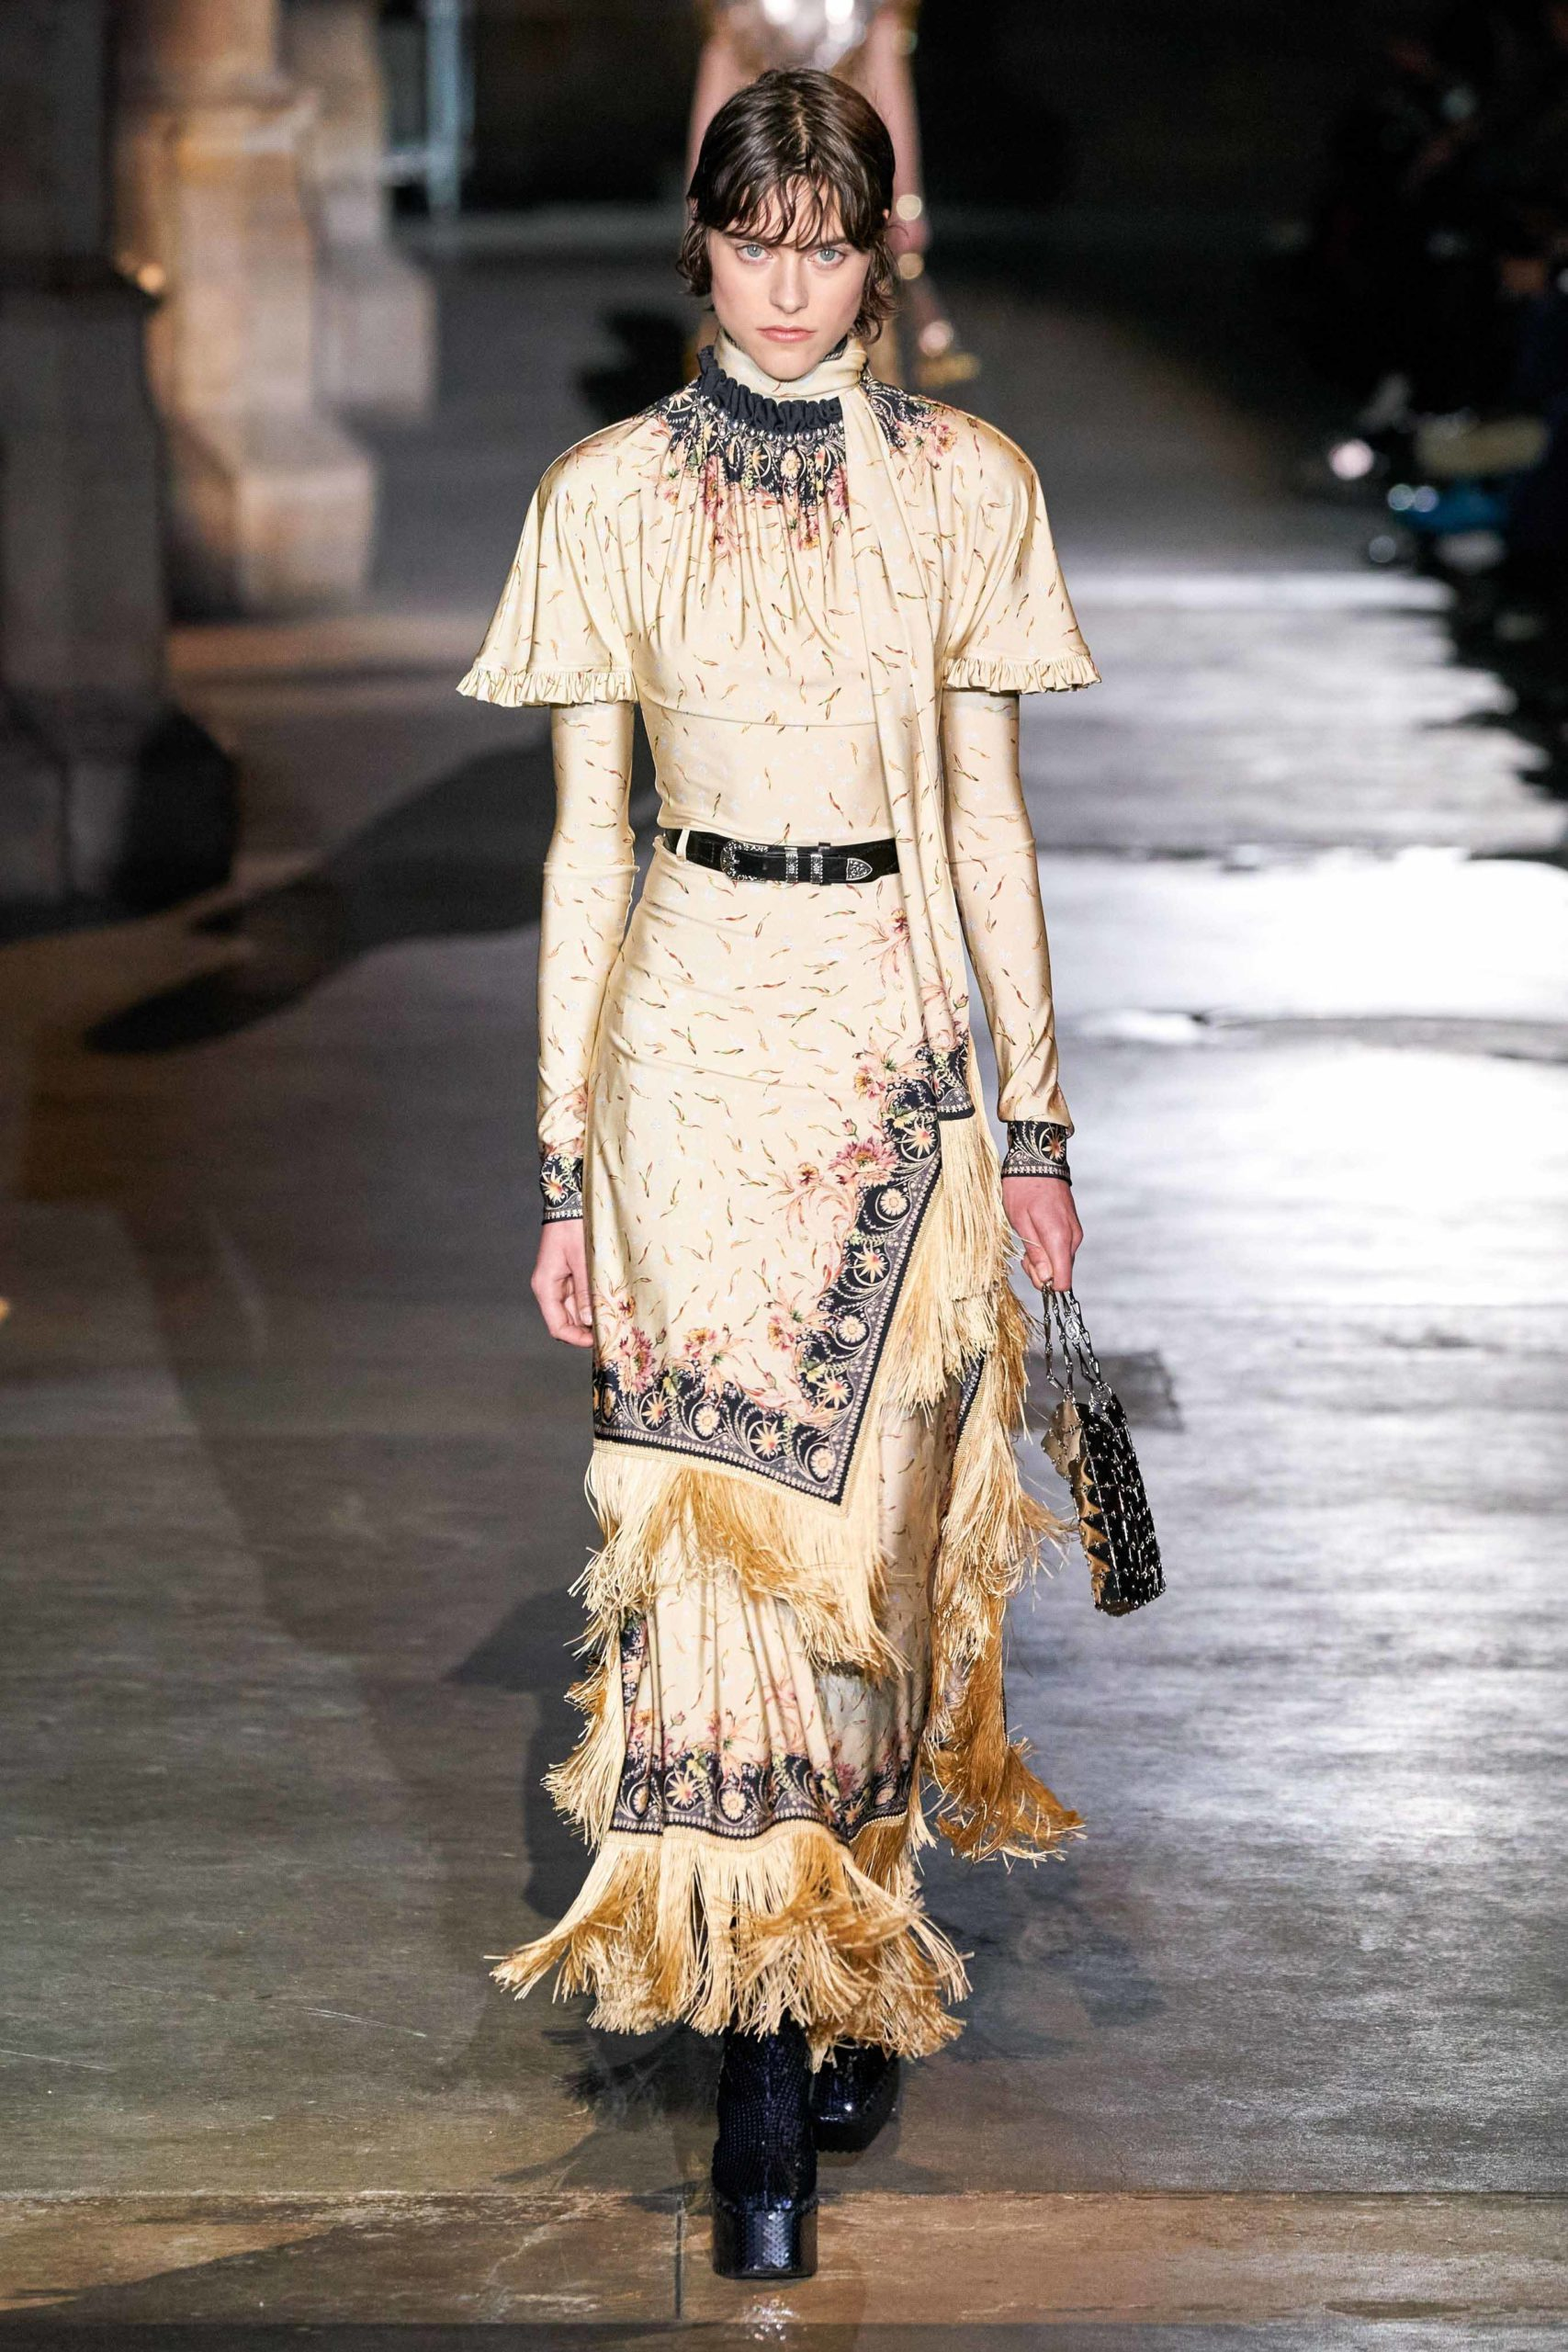 Paco Rabanne Fall 2020 trends runway coverage Ready To Wear Vogue wild animal arnais cape fringe